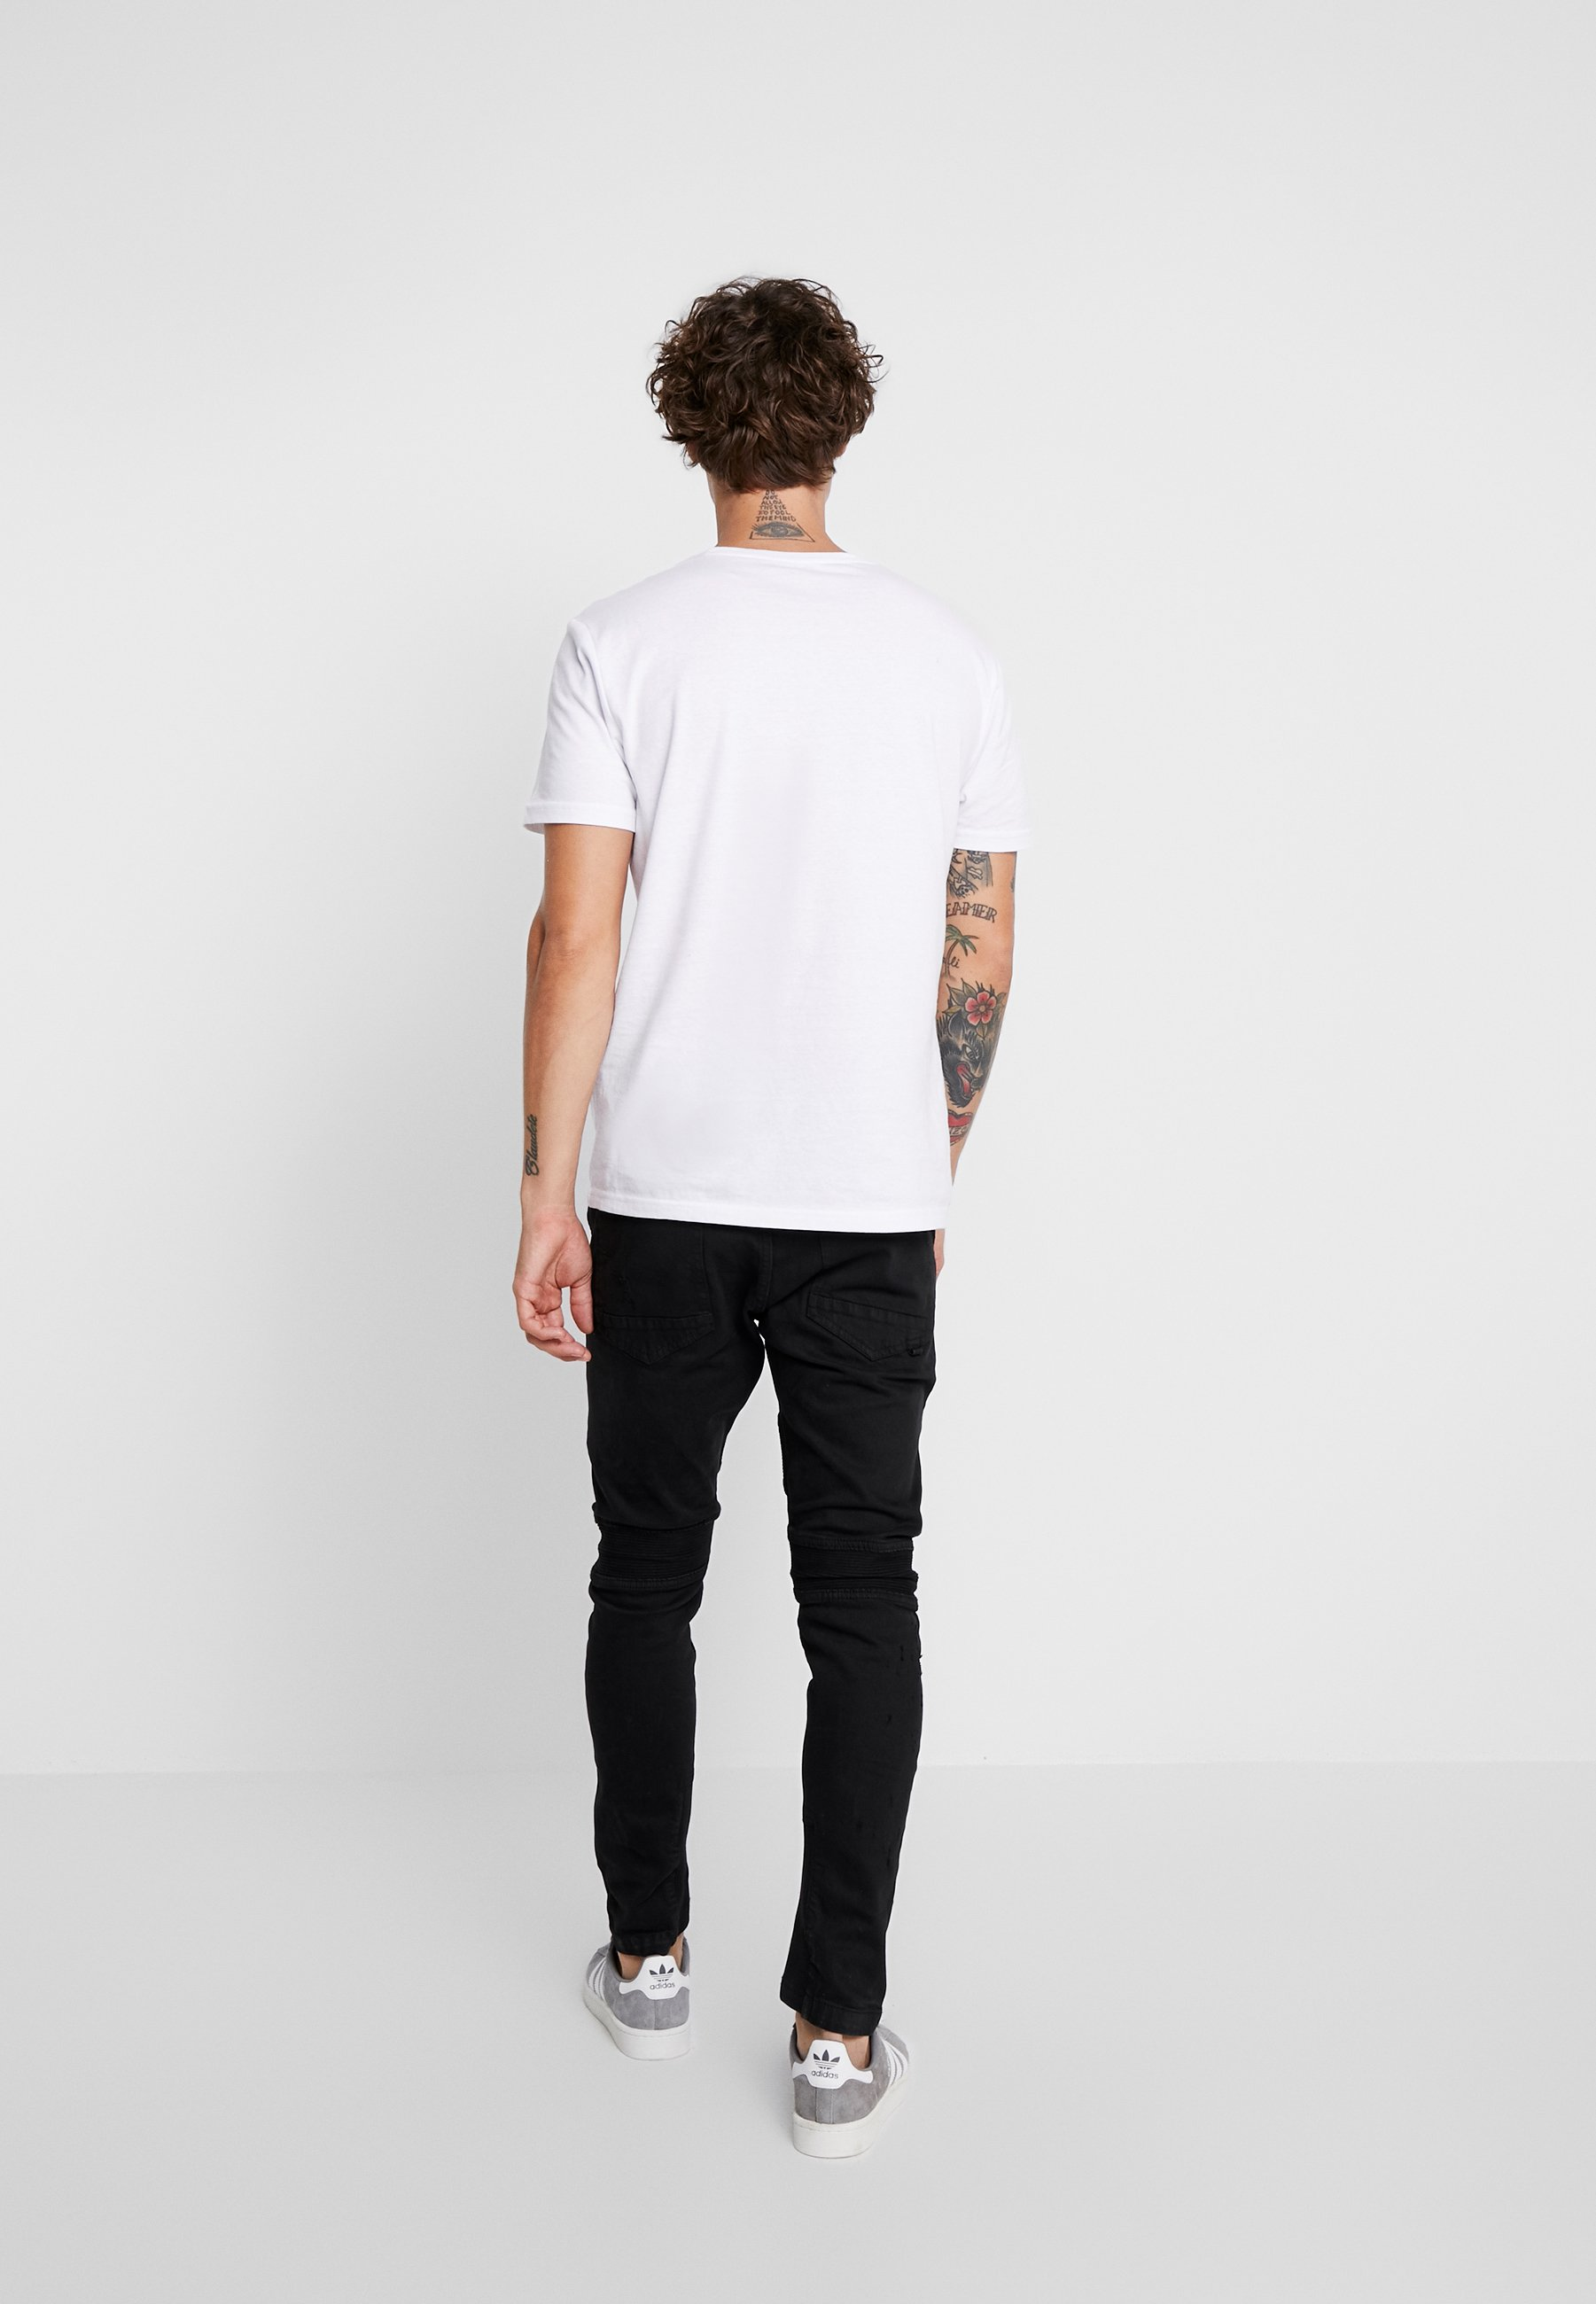 Cotton On Jeans Tapered Fit - Black